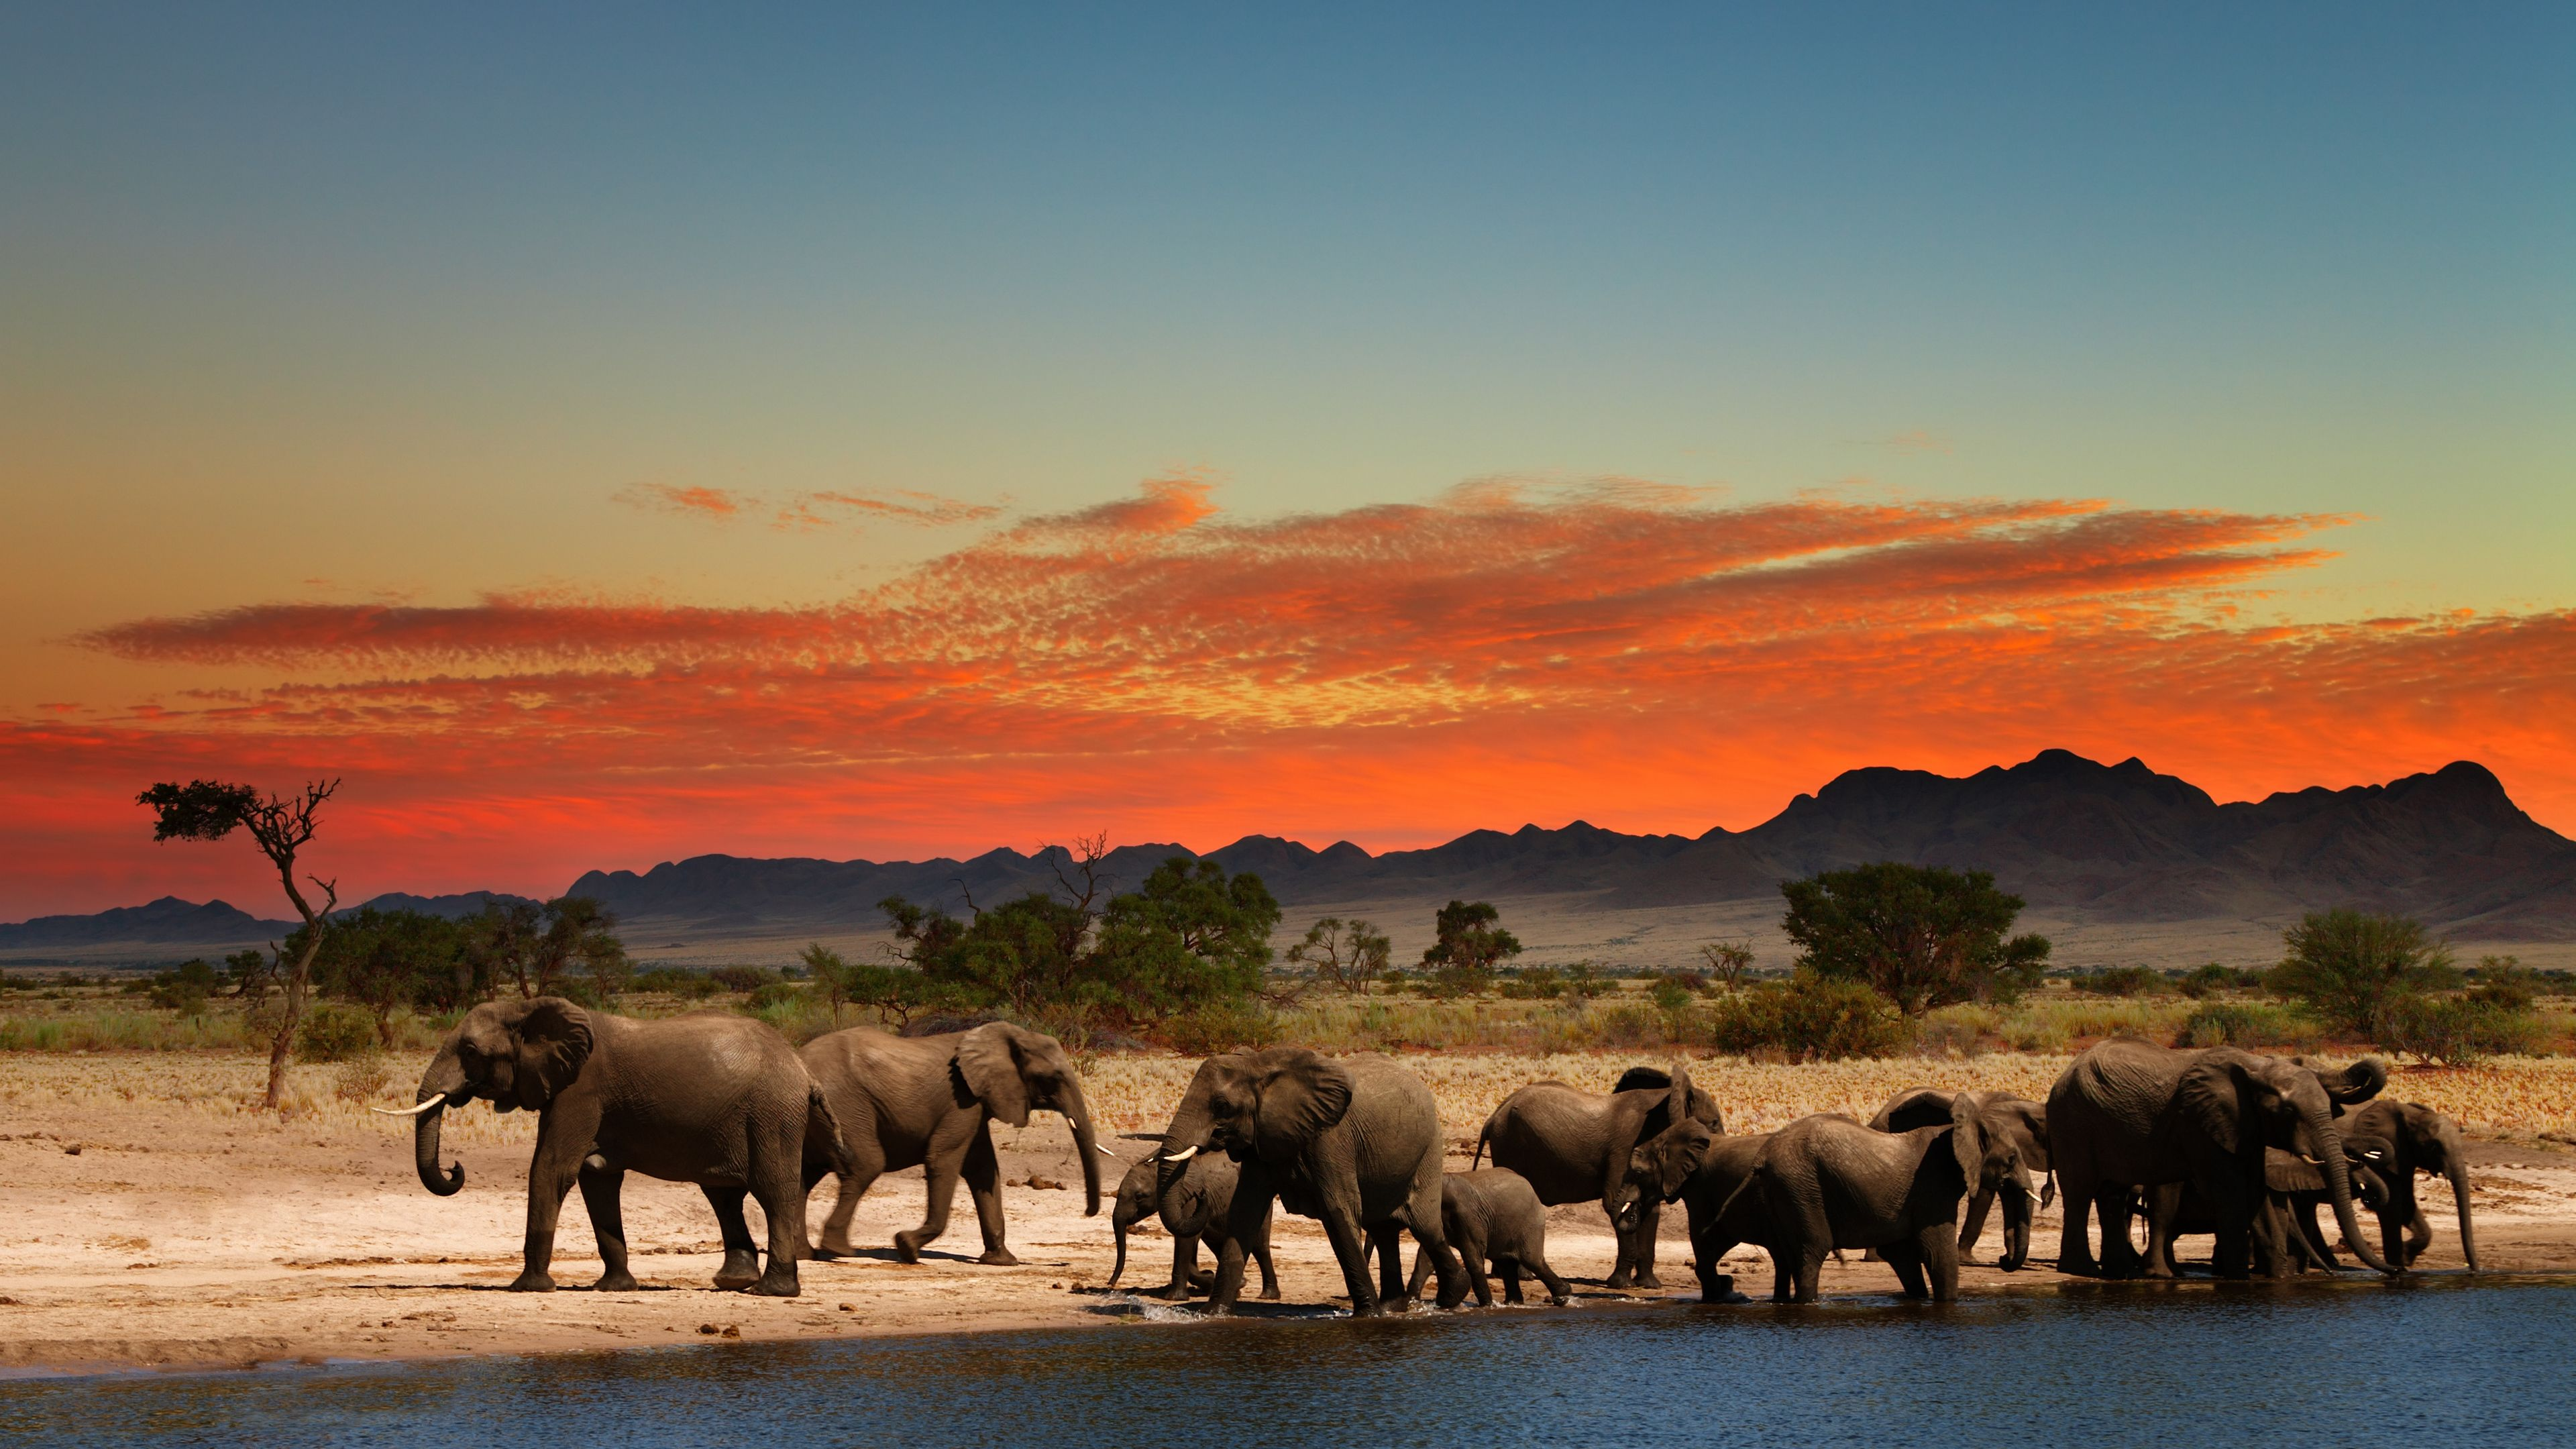 Africa 4k Wallpapers Top Free Africa 4k Backgrounds